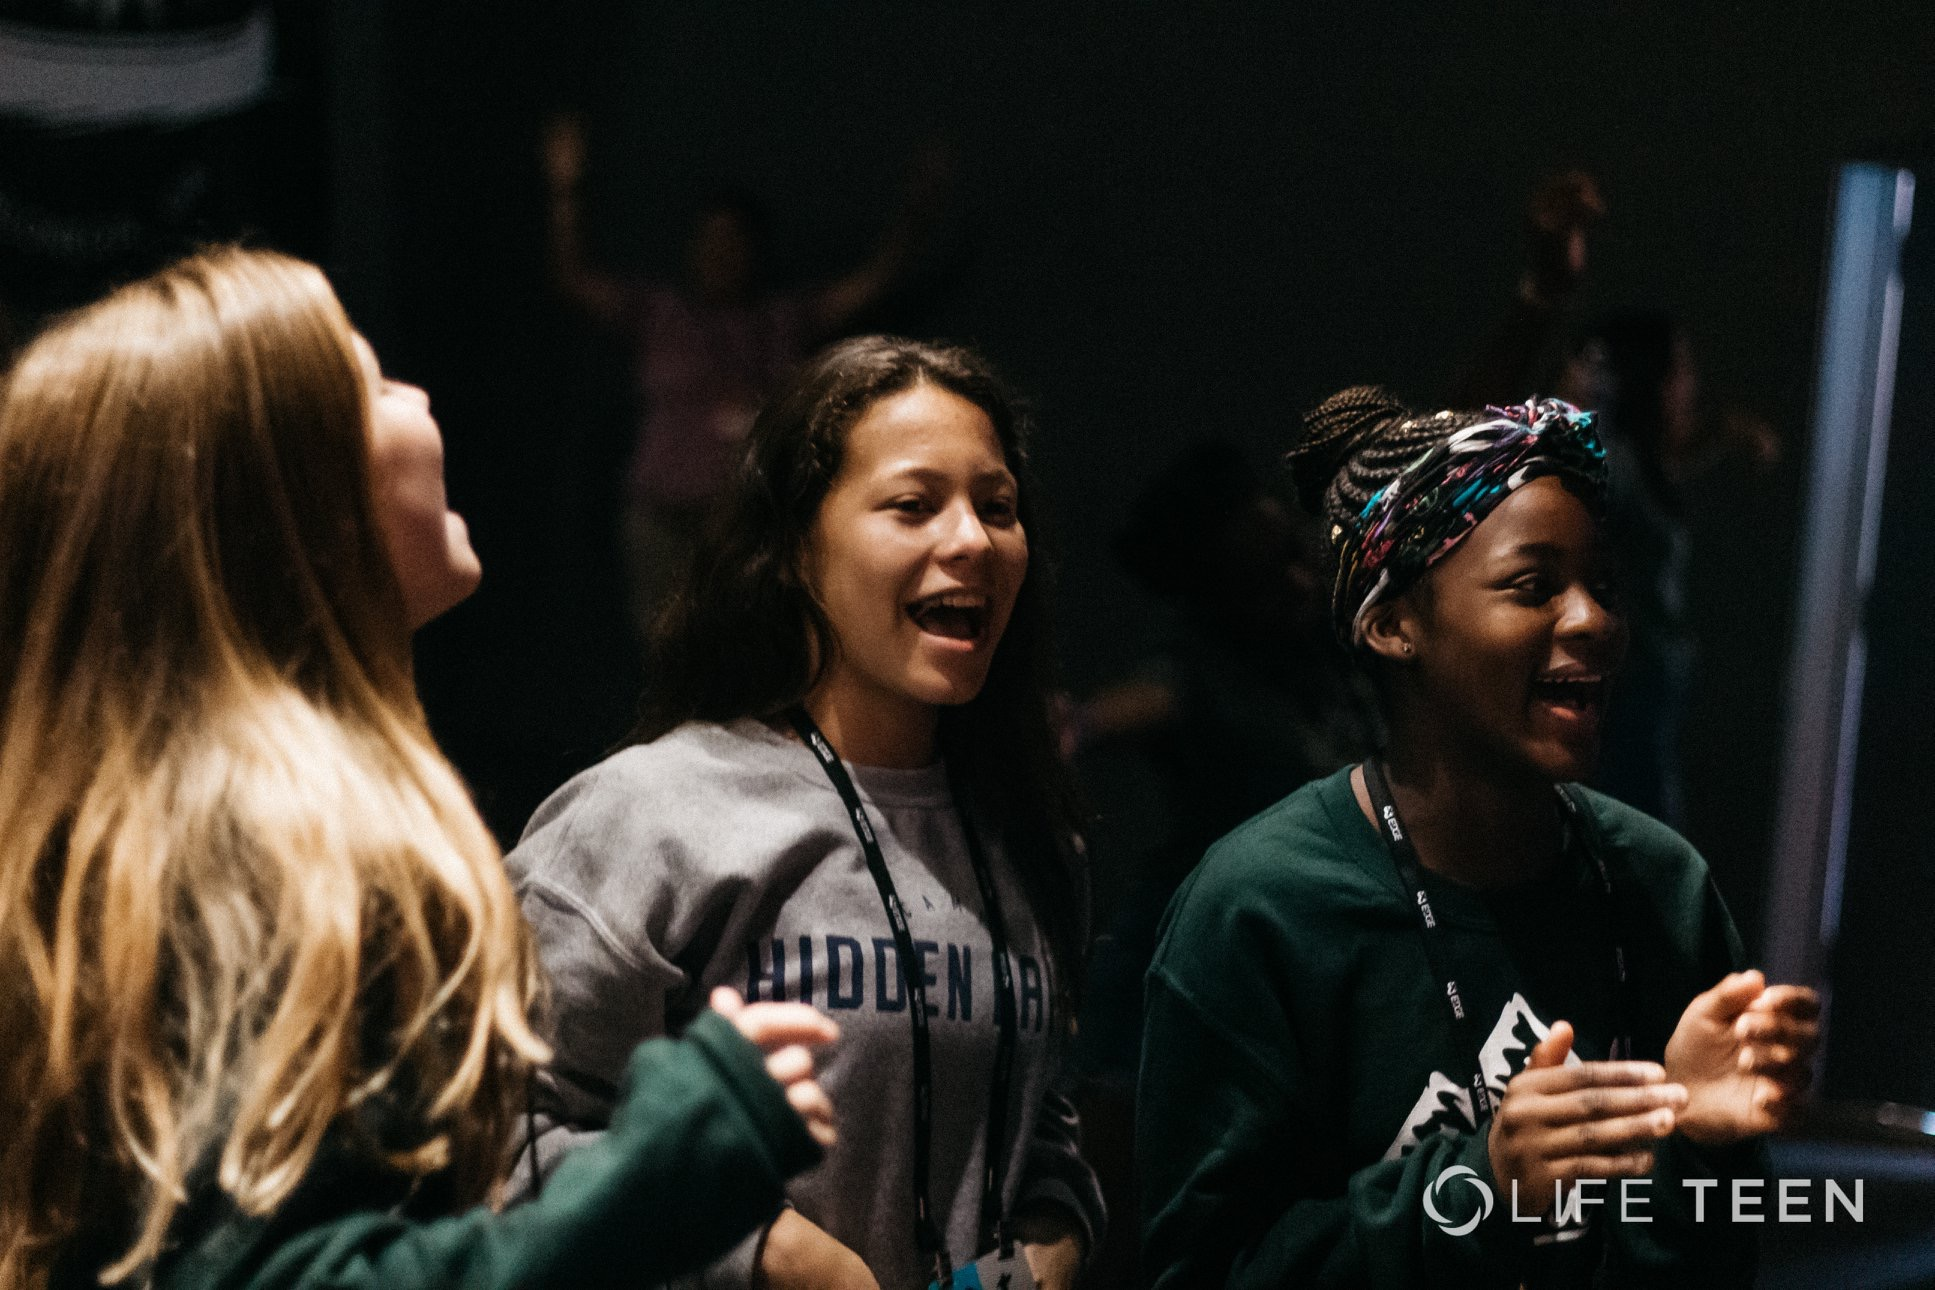 WEDNESDAY SUMMIT - All high schoolers are invited to join us for SUMMIT which is discipleship in the Youth Room Wednesday from 6-7:30PM. Every week, we'll meet to dive deeper into community, the scripture readings for the week, and talk together about the ways God is moving in our lives.Check our calendar for specific dates.